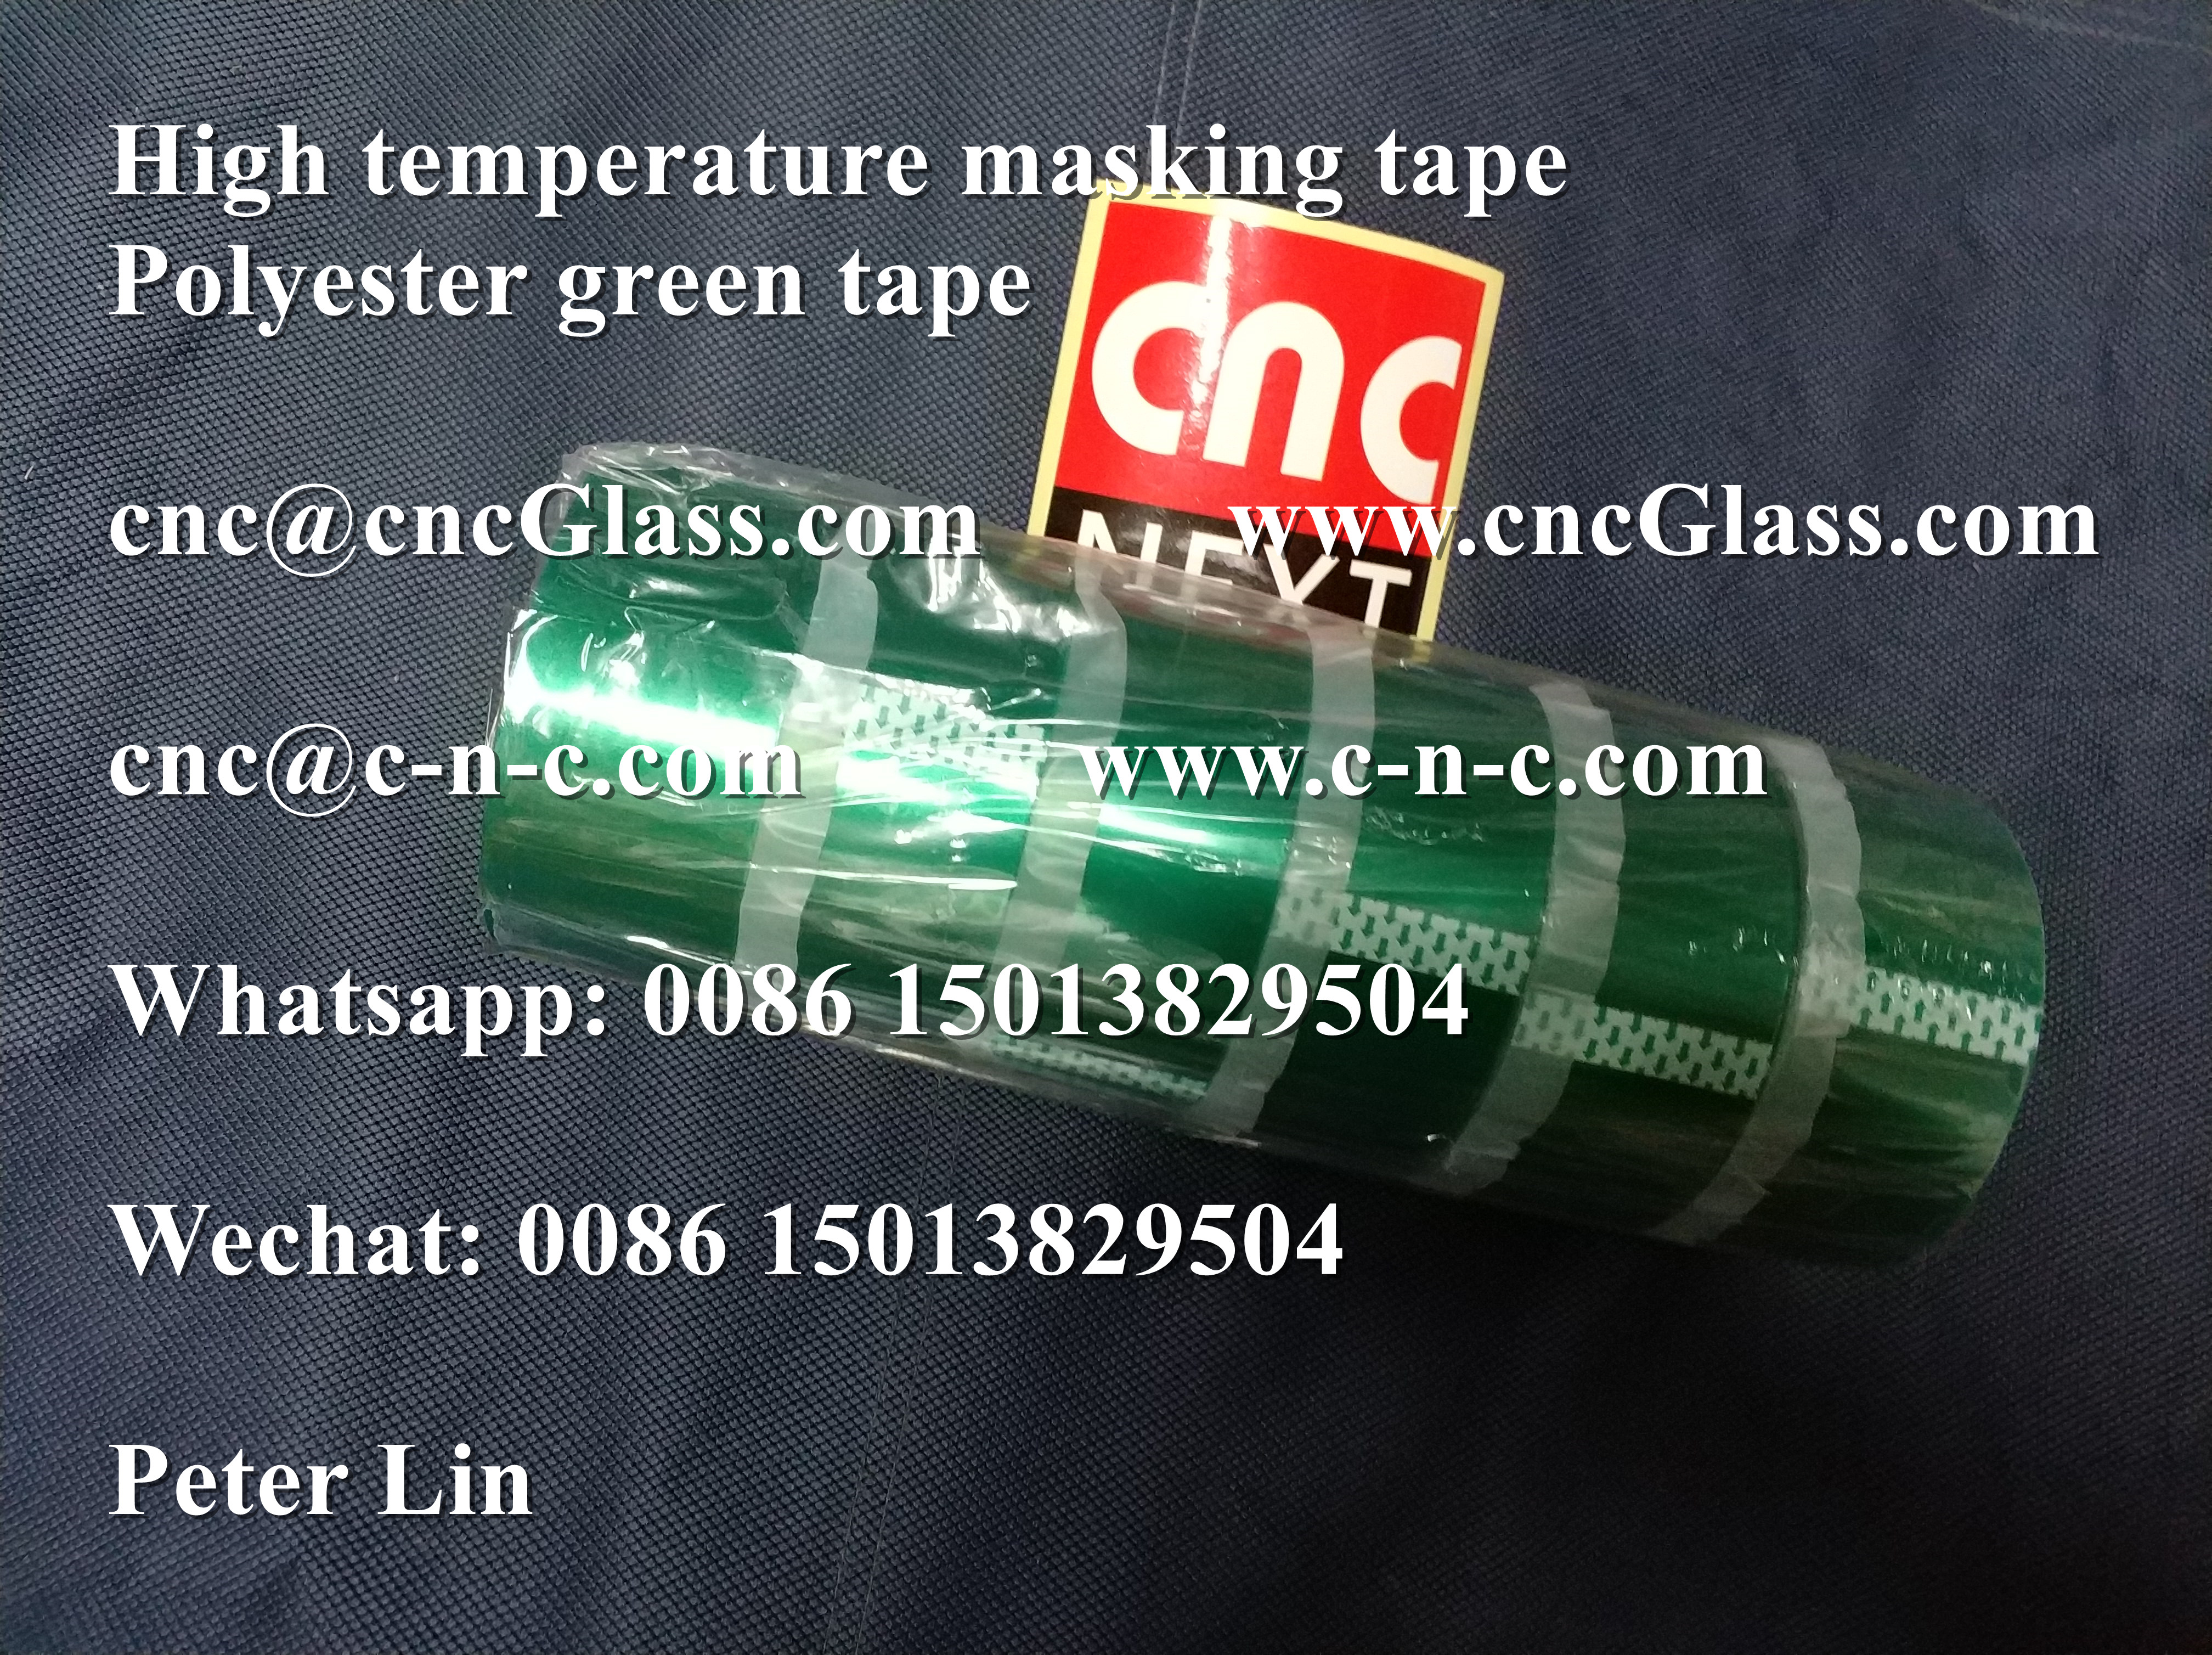 1designed For Various High Temperature Applications Such As In Circuit Board Tape Composite Industries 2protection Of Boards During Plating Or Stripping Gold